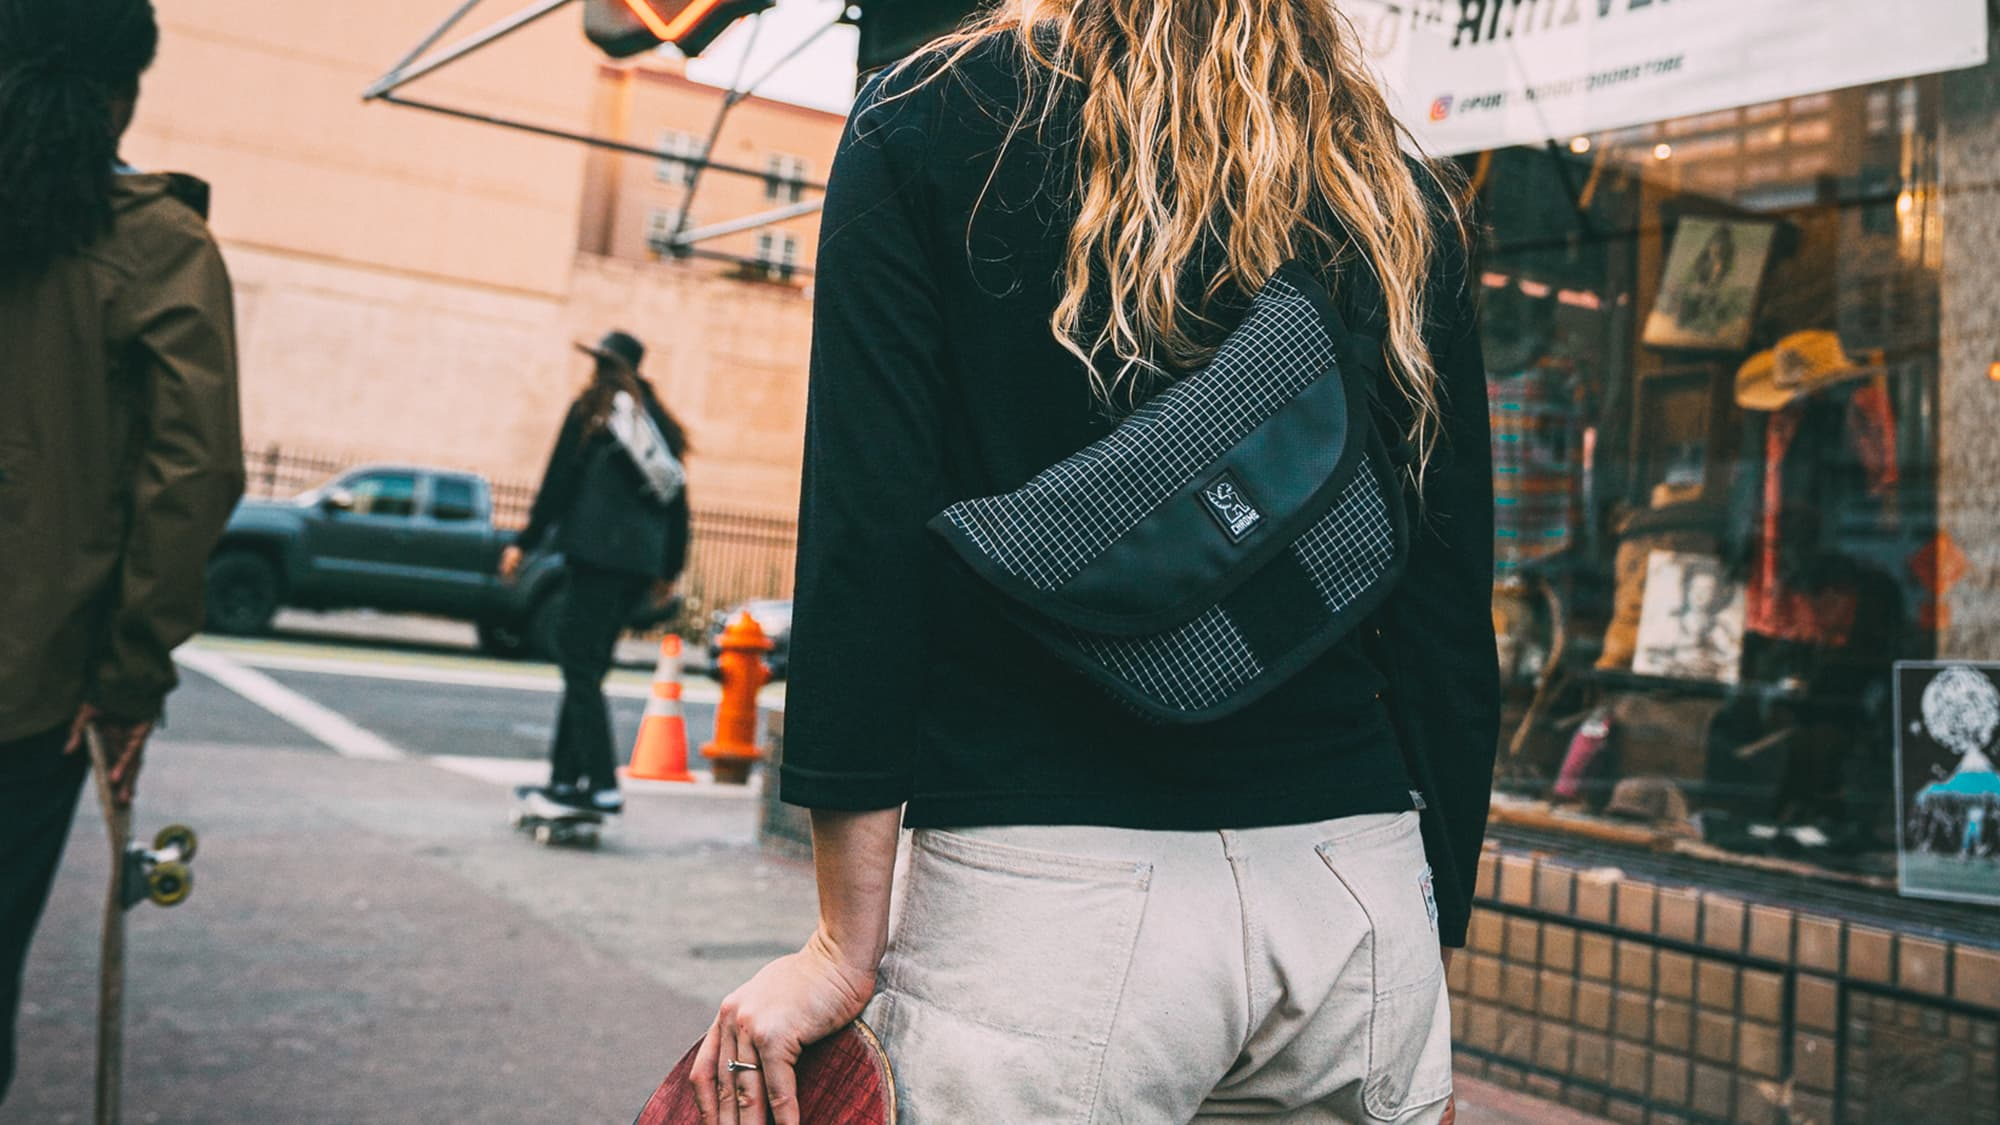 Hip sling is a great sling bag